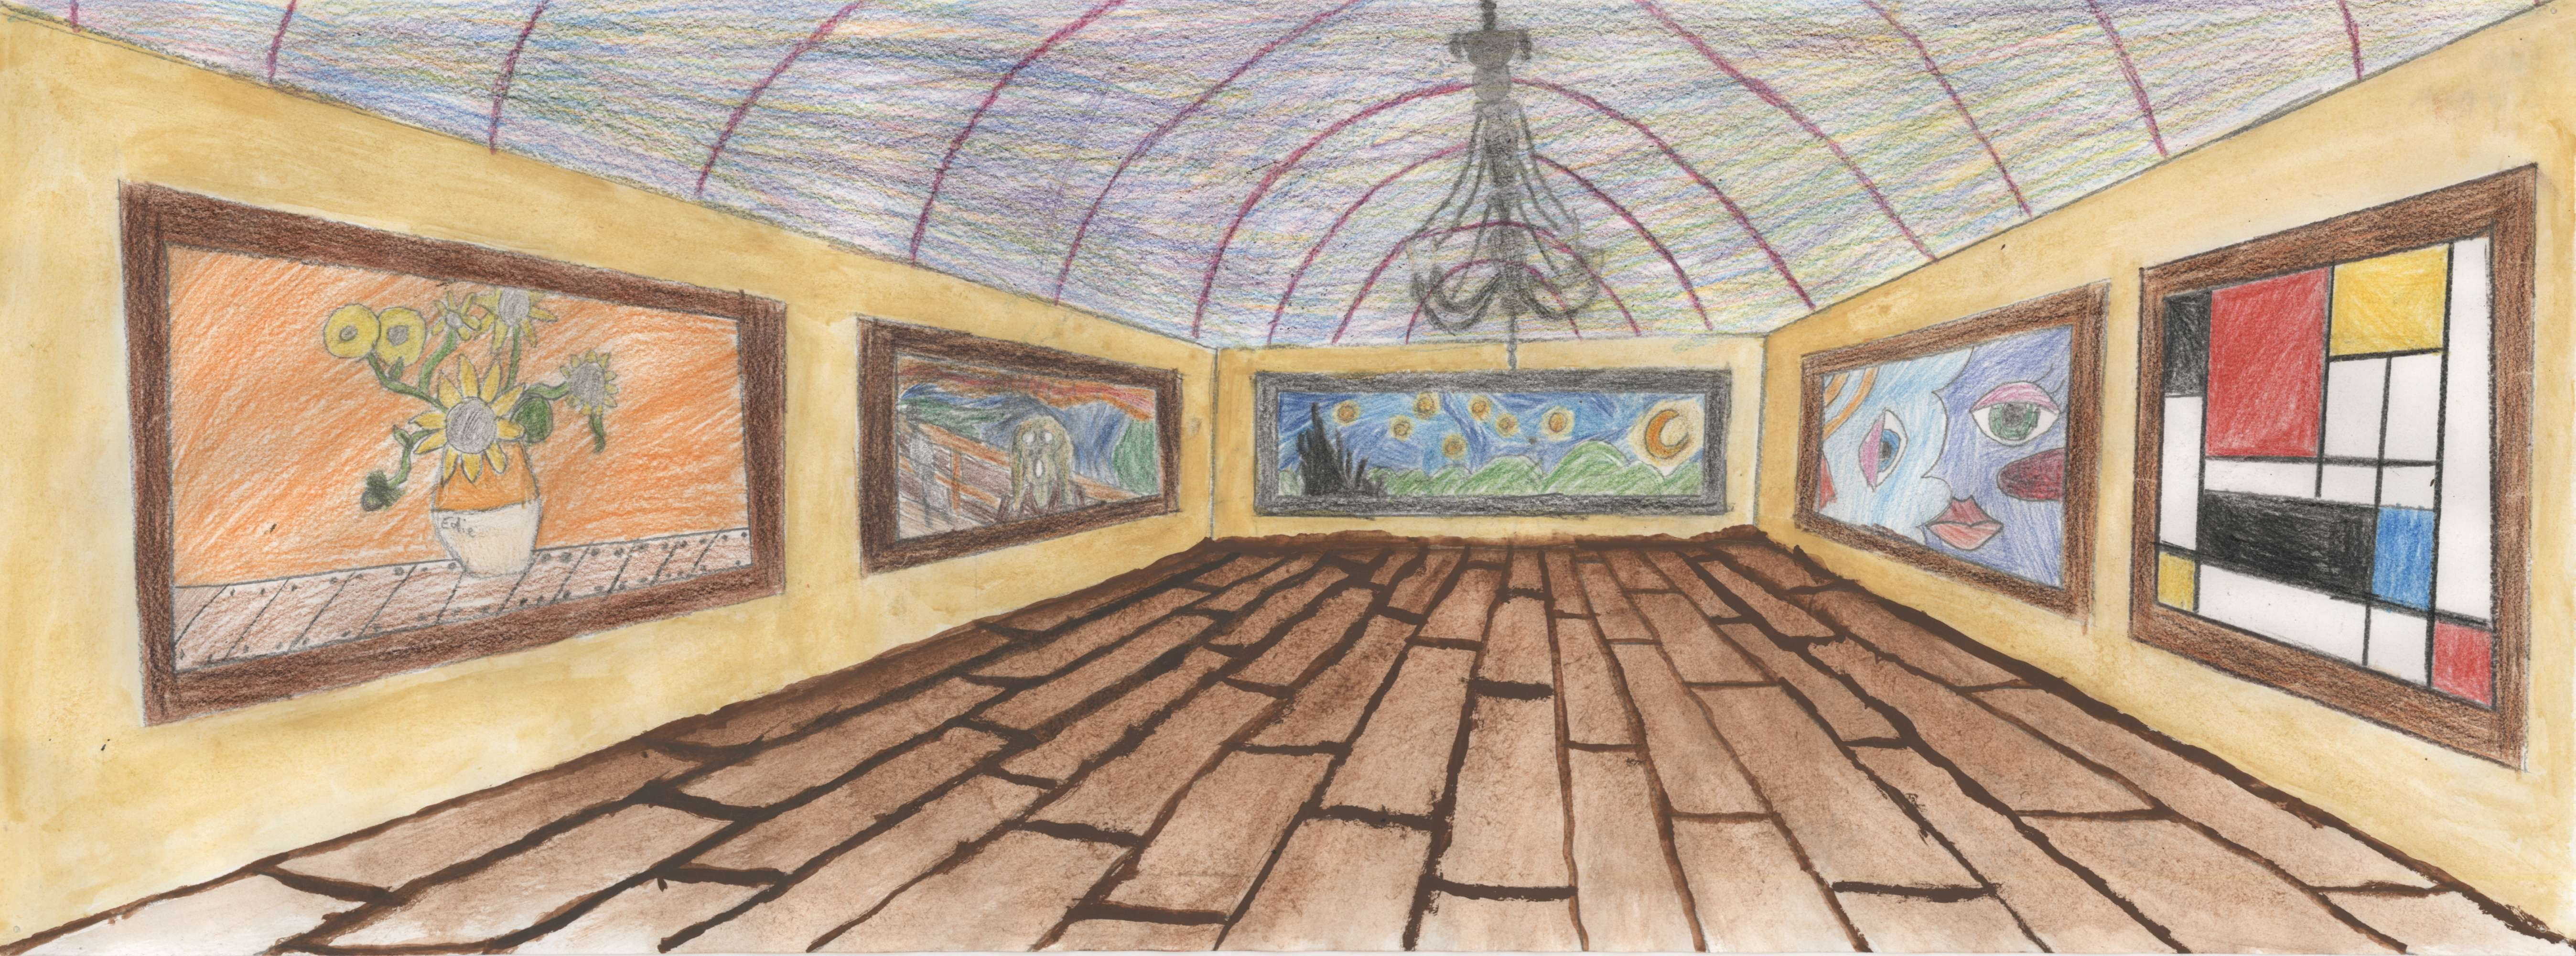 One-Point Perspective Art Gallery 2